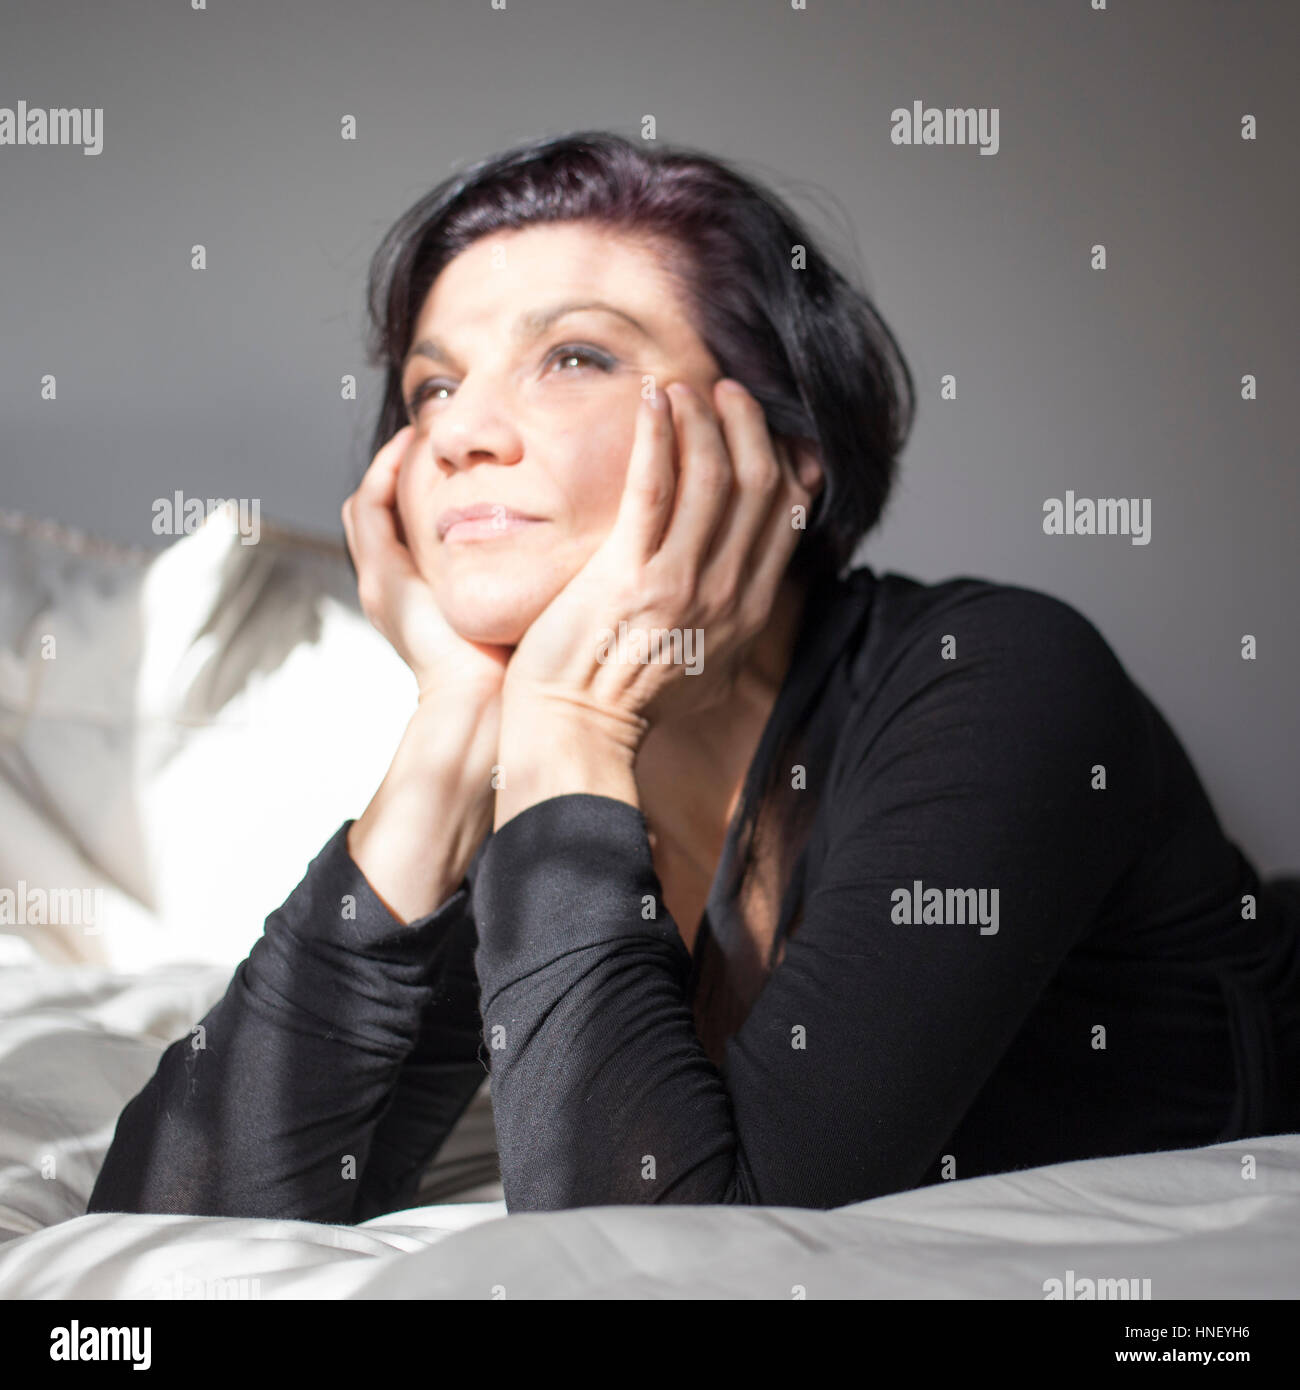 Unfocused shot of a dreaming woman - Stock Image